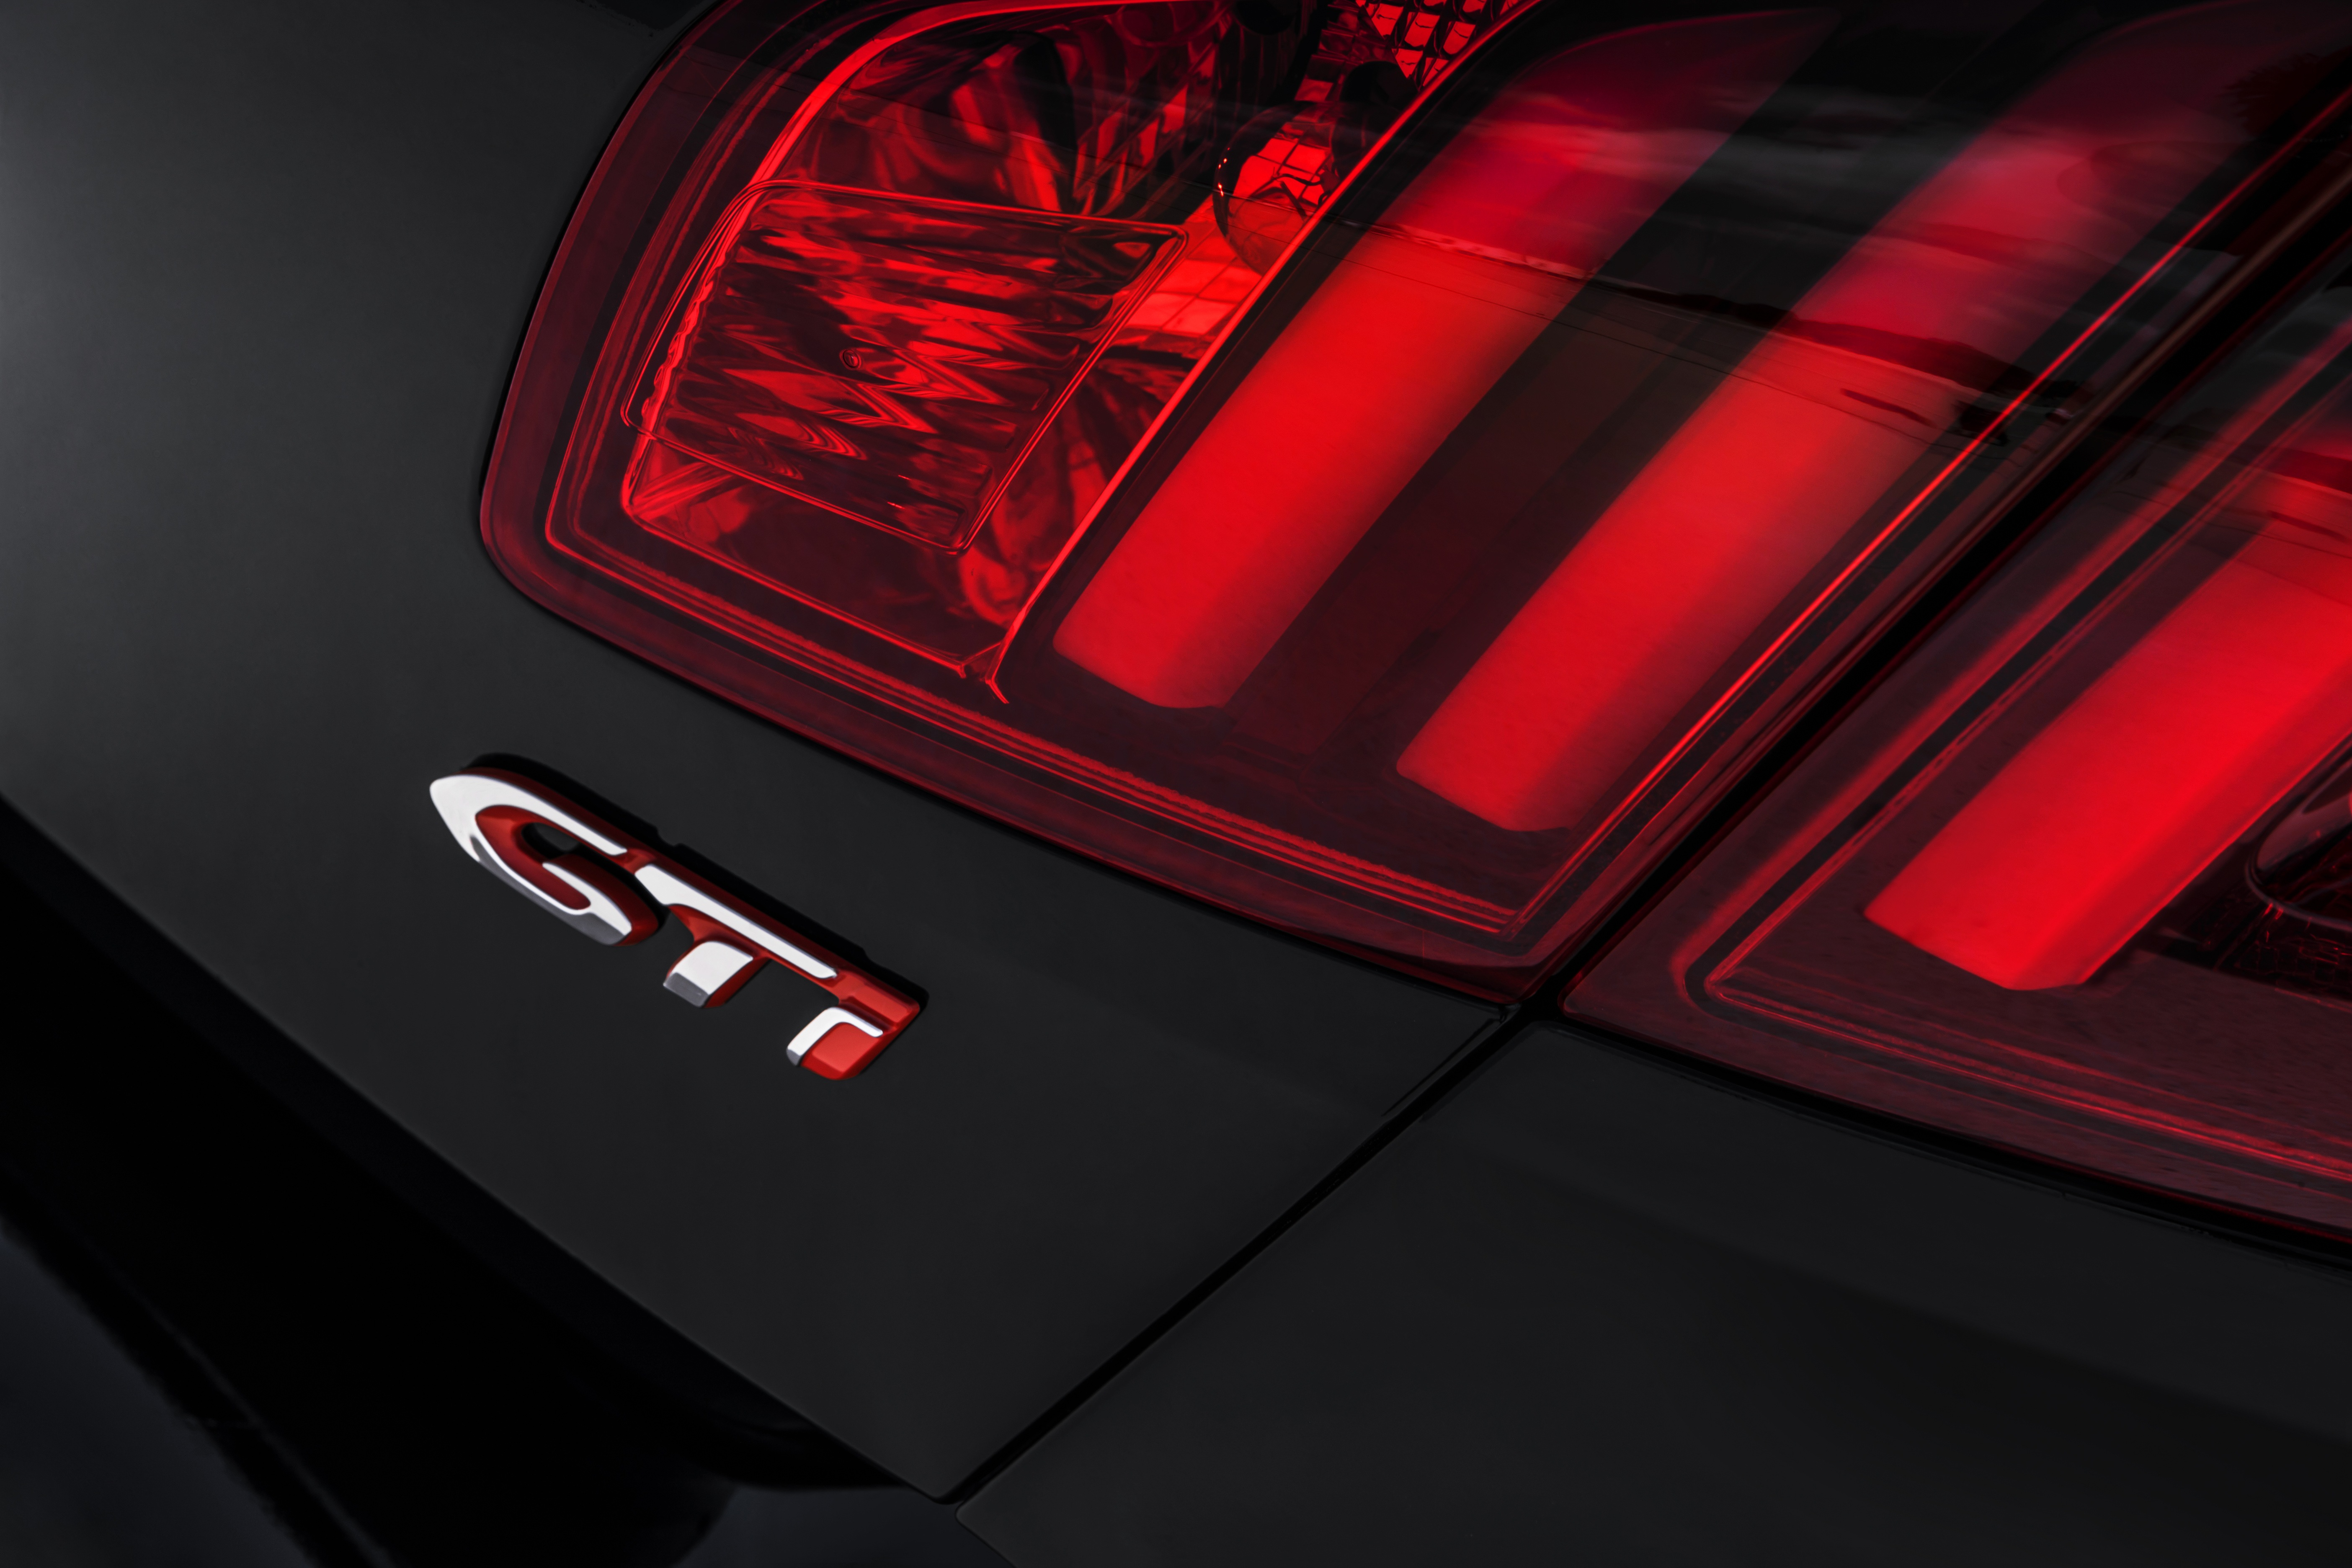 2018 Gti S >> 2016 Peugeot 308 GTi unveiled: 270 hp Gallic hot hatch Paul Tan - Image 351969